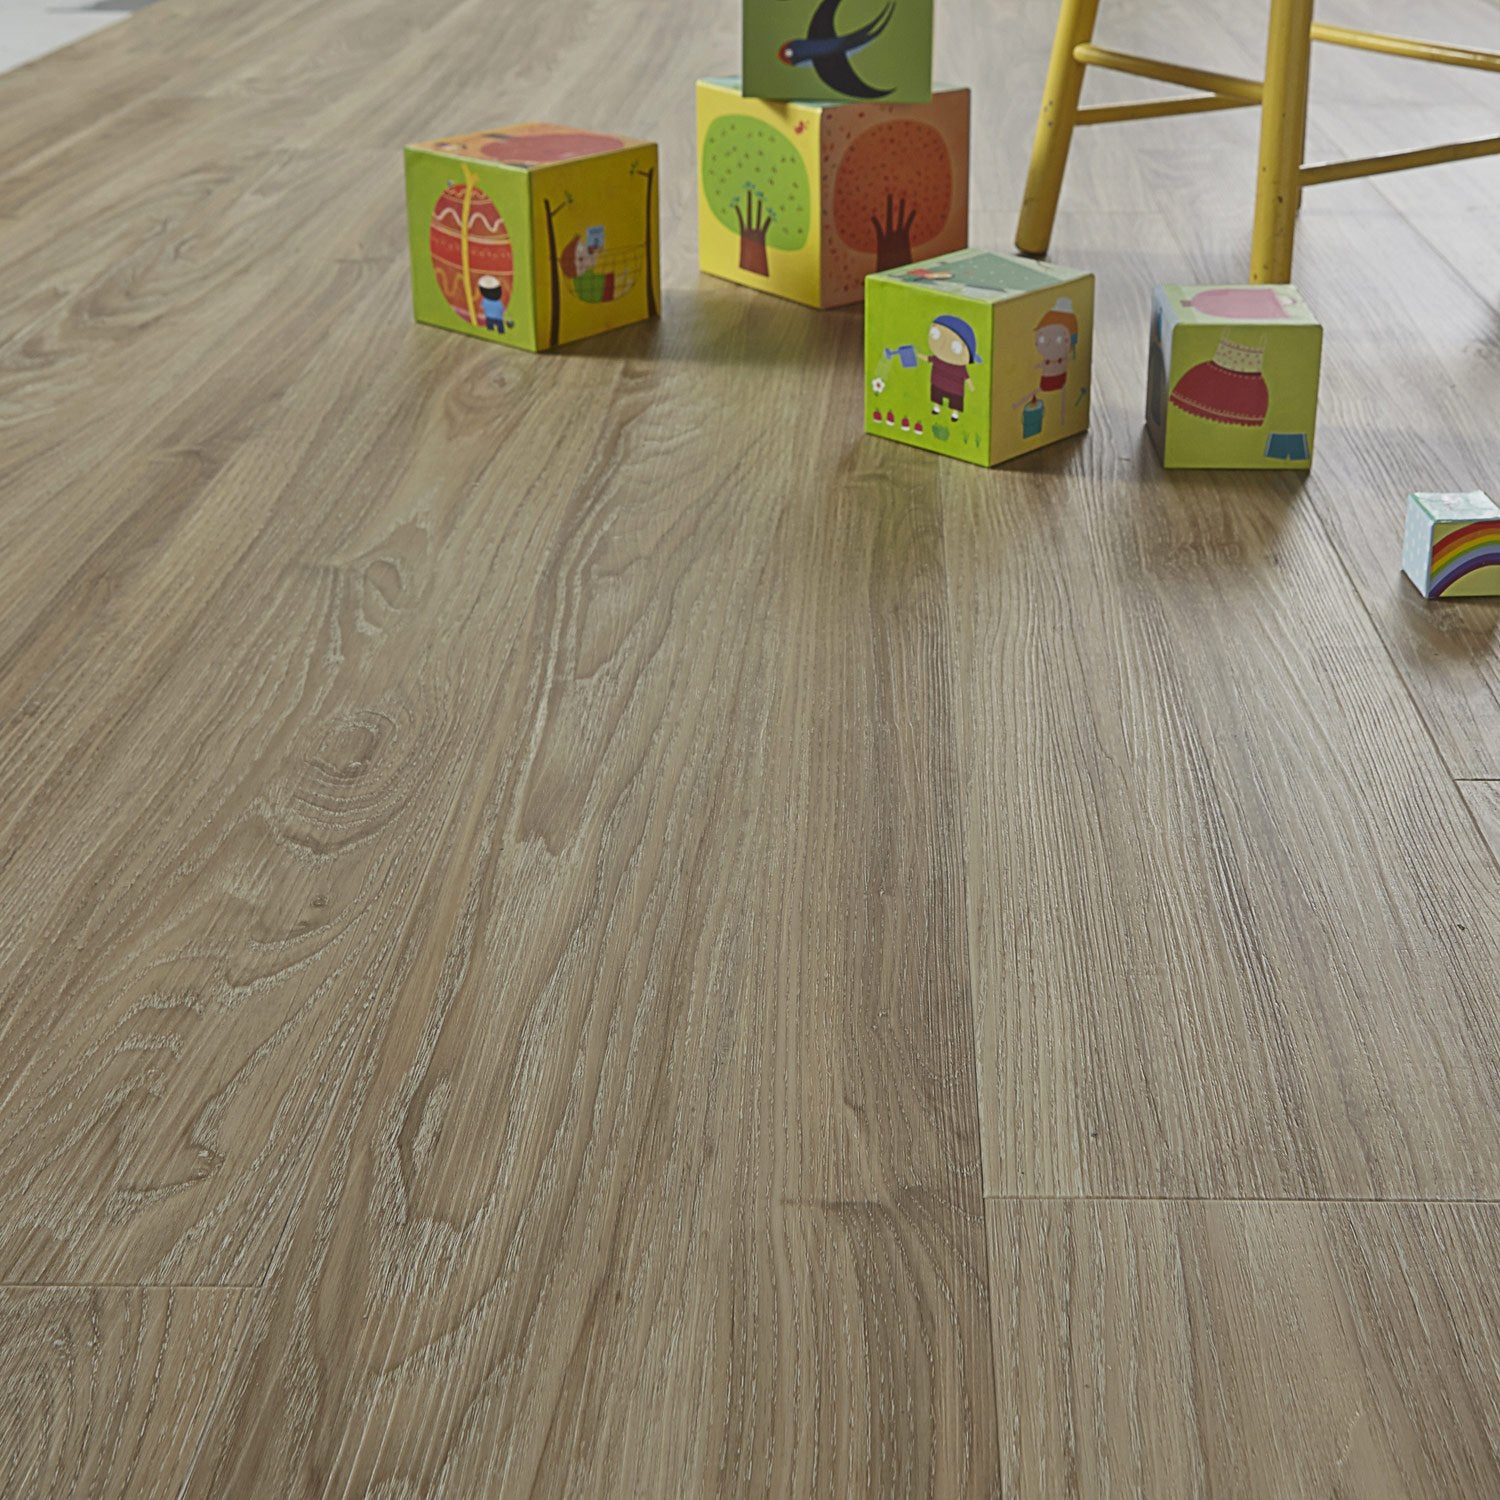 Lame pvc clipsable aspen oak limed contesse revelation leroy merlin - Lame pvc clipsable leroy merlin ...